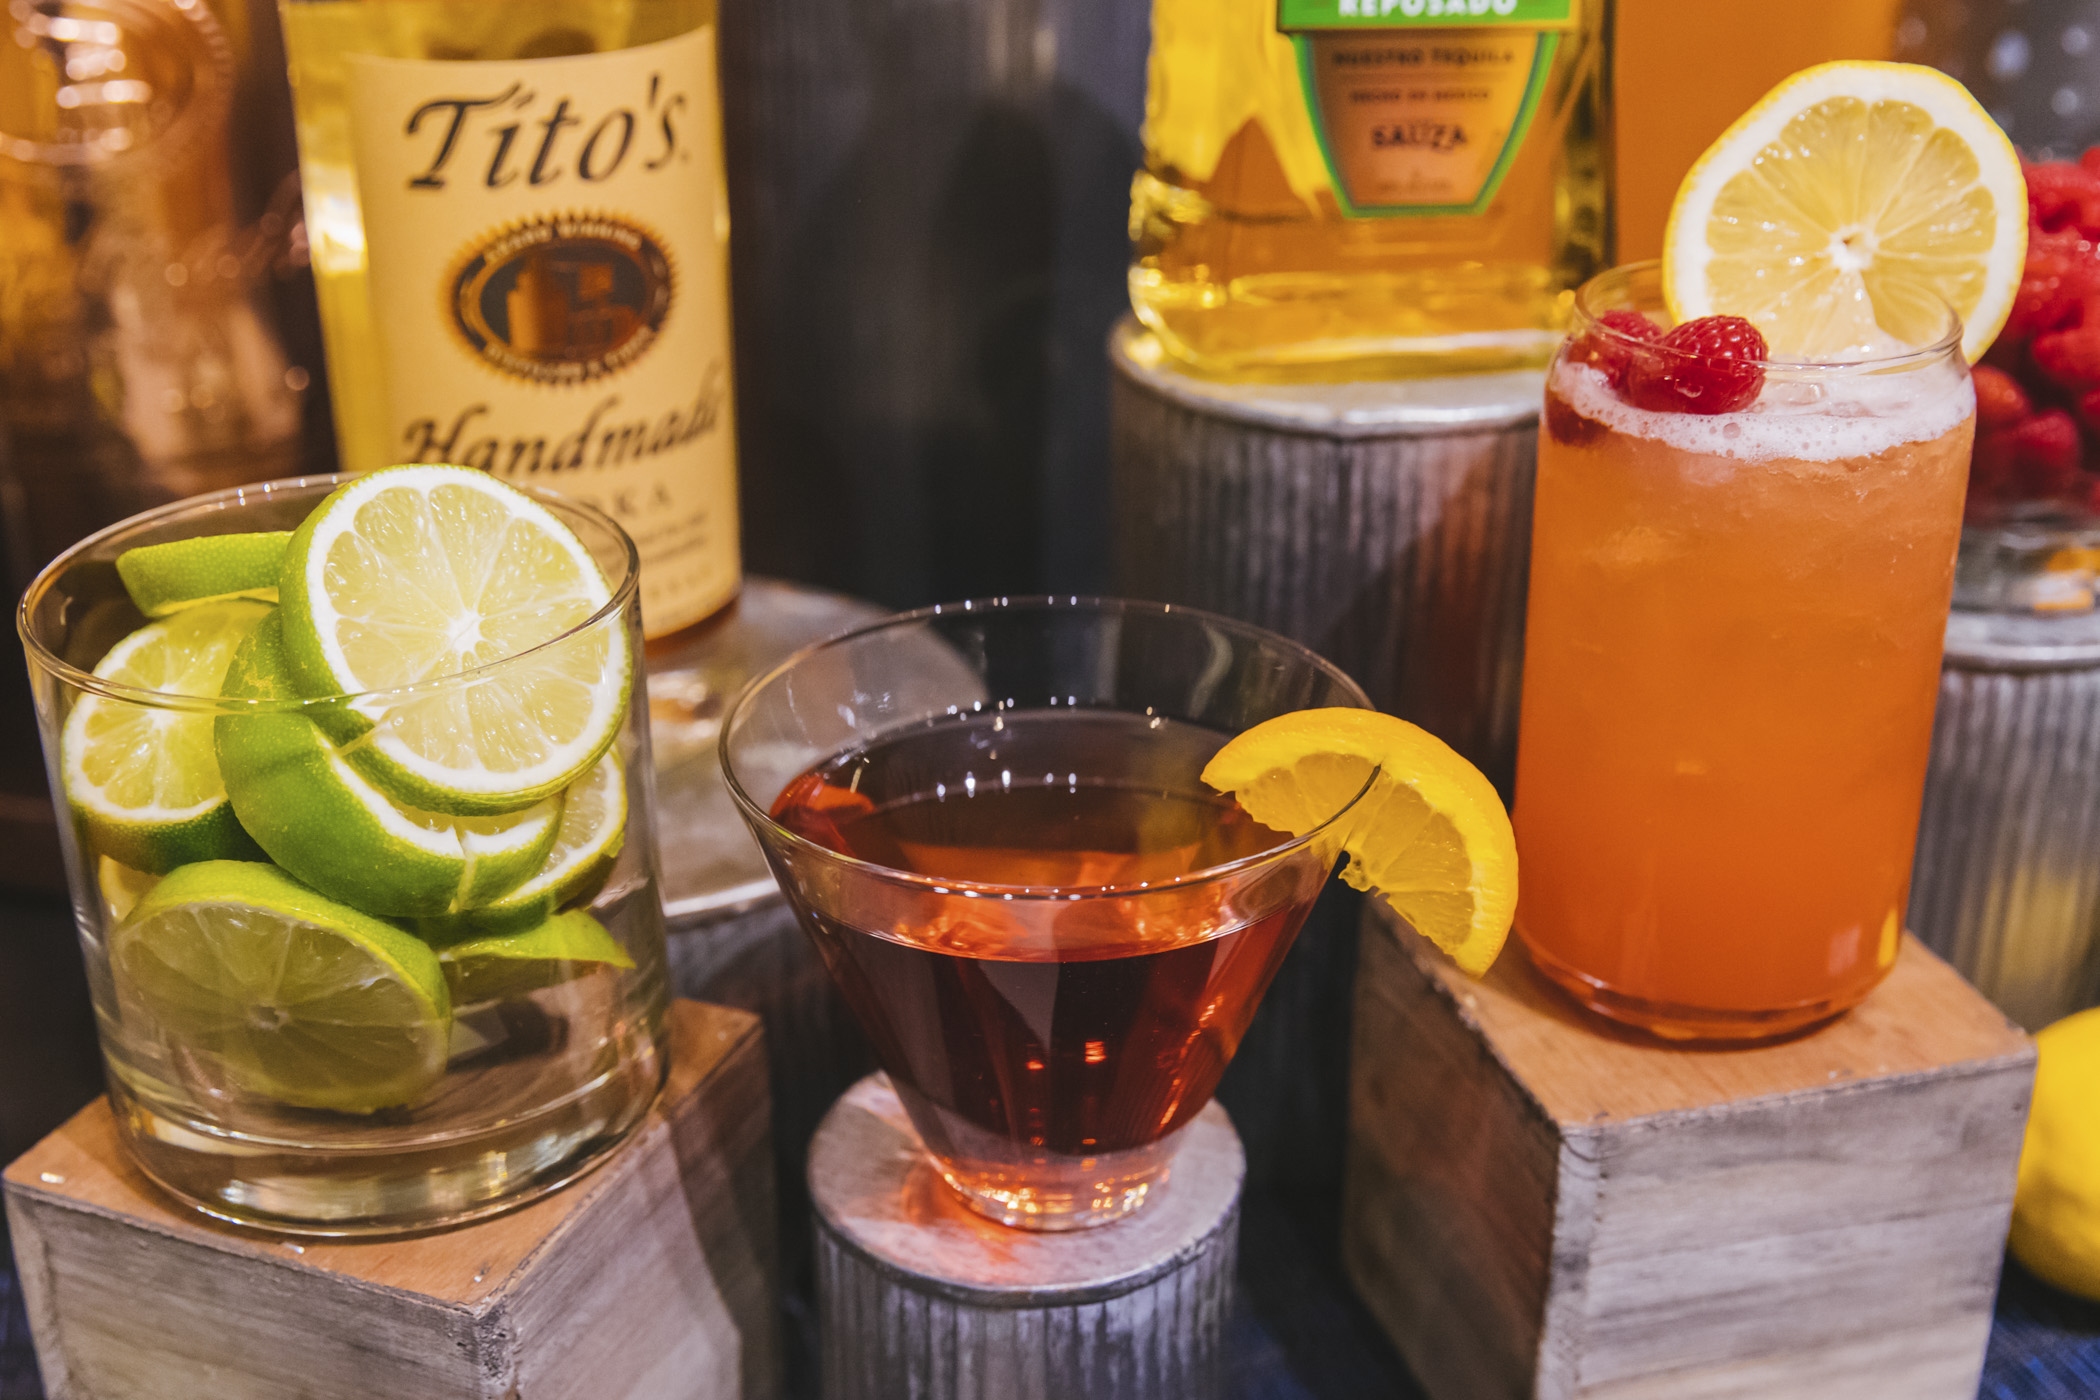 Classic Cosmo, $14. Tito's Handmade vodka, orange liqueur, fresh lime juice and cranberry juice. (Loge Boxes, Diamond Club). We snuck in a little preview of the beer, wine and spirits offerings for the 2020 Seattle Mariners season at T-Mobile Park! Home Opener is March 26 at 1:10 p.m. agains the Rangers. Go M's! (Image: Sunita Martini / Seattle Refined)